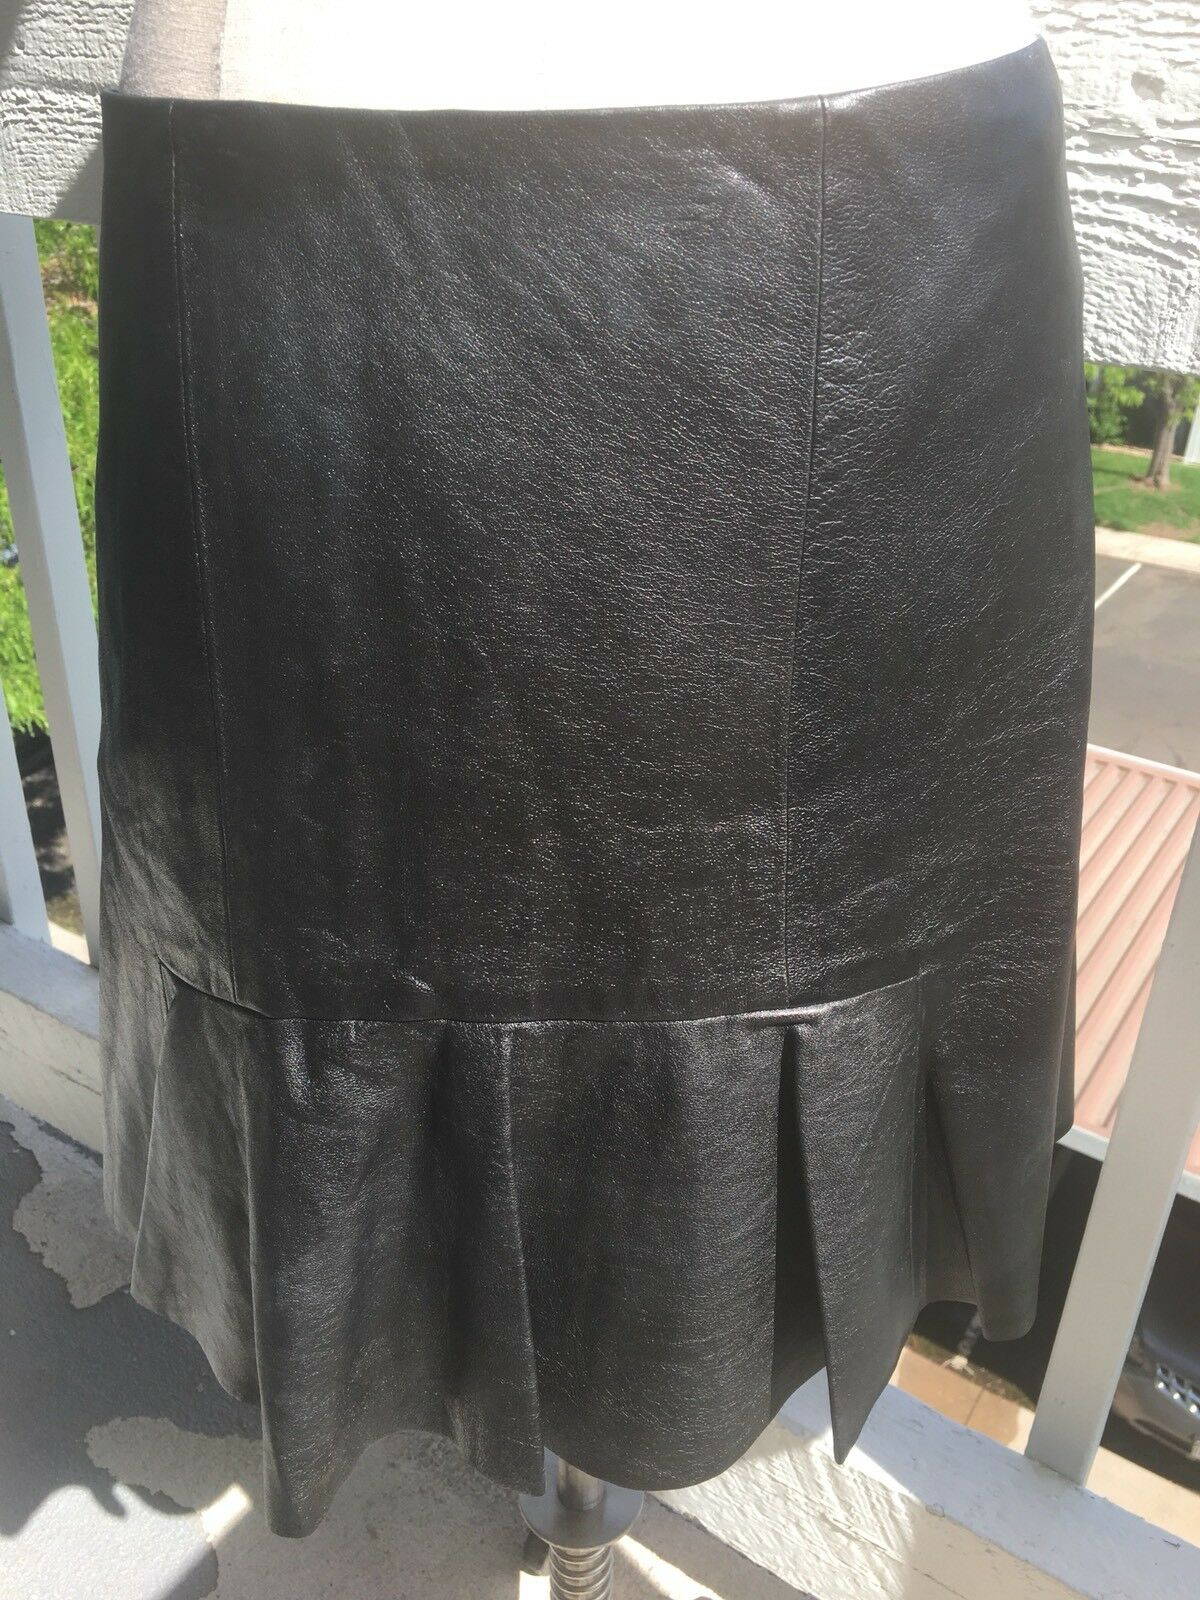 DKNY 100% LAMB LEATHER SKIRT SIZE 10